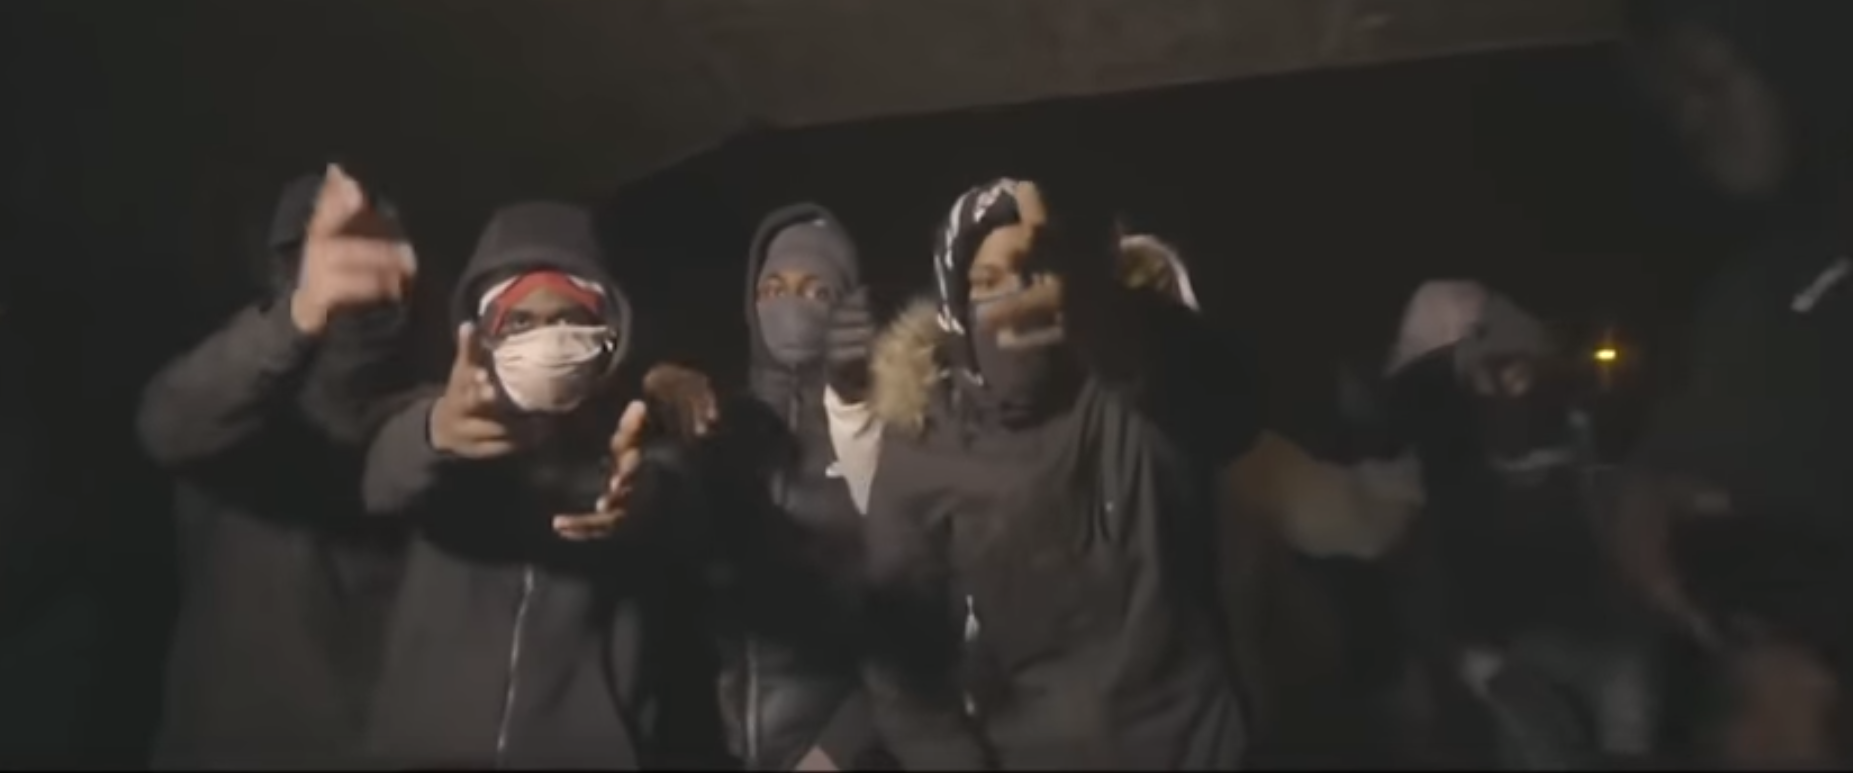 violent UK drill rap videos